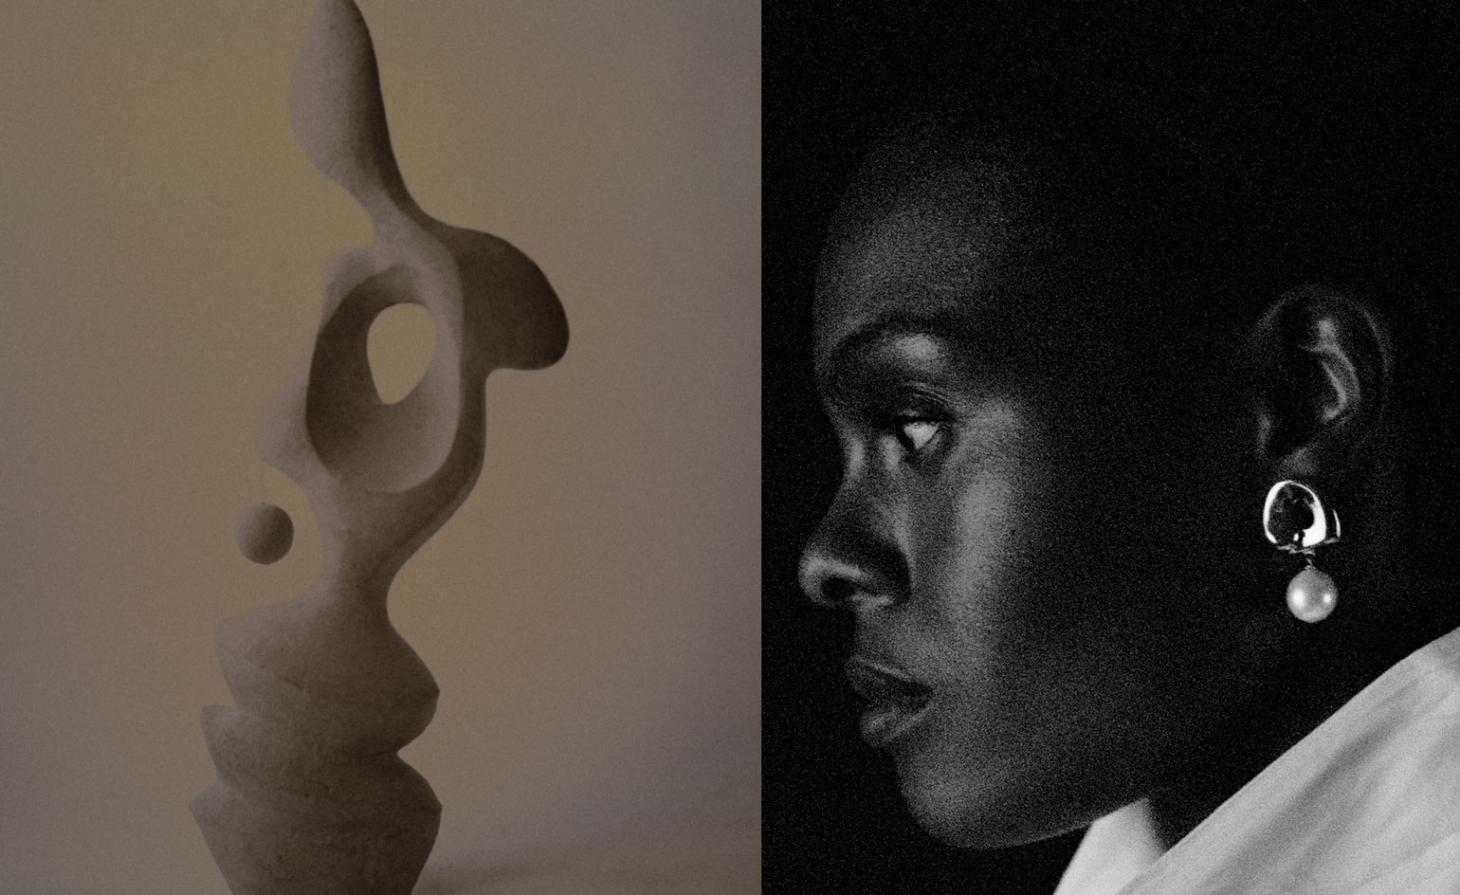 Woman weaing a pearl earring photographed in profile next to a sculpture